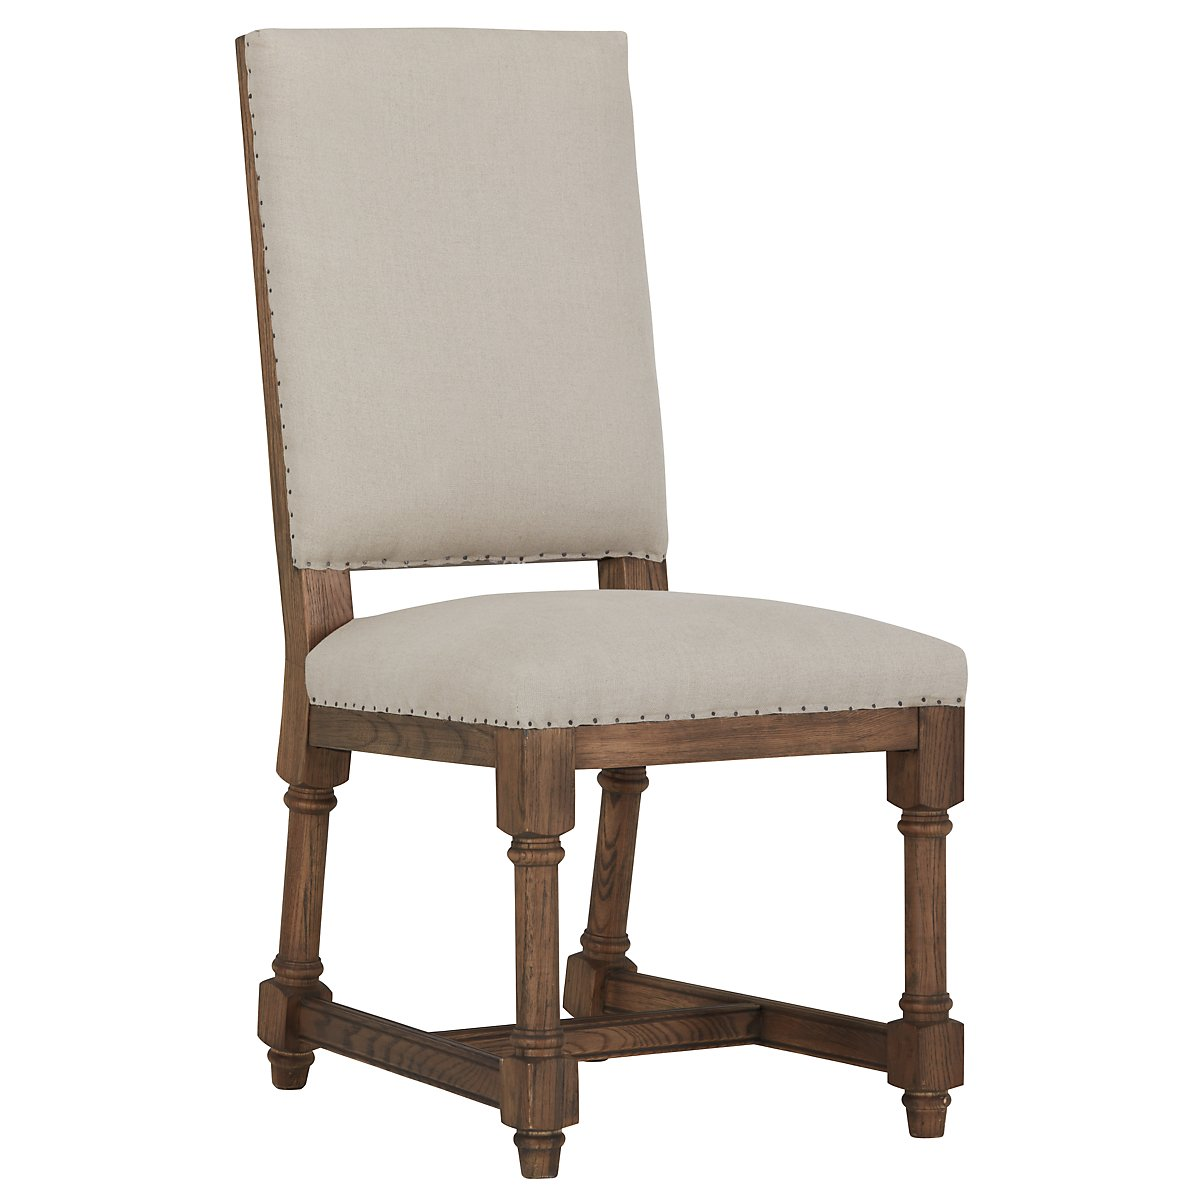 Alister Beige Fabric Upholstered Side Chair